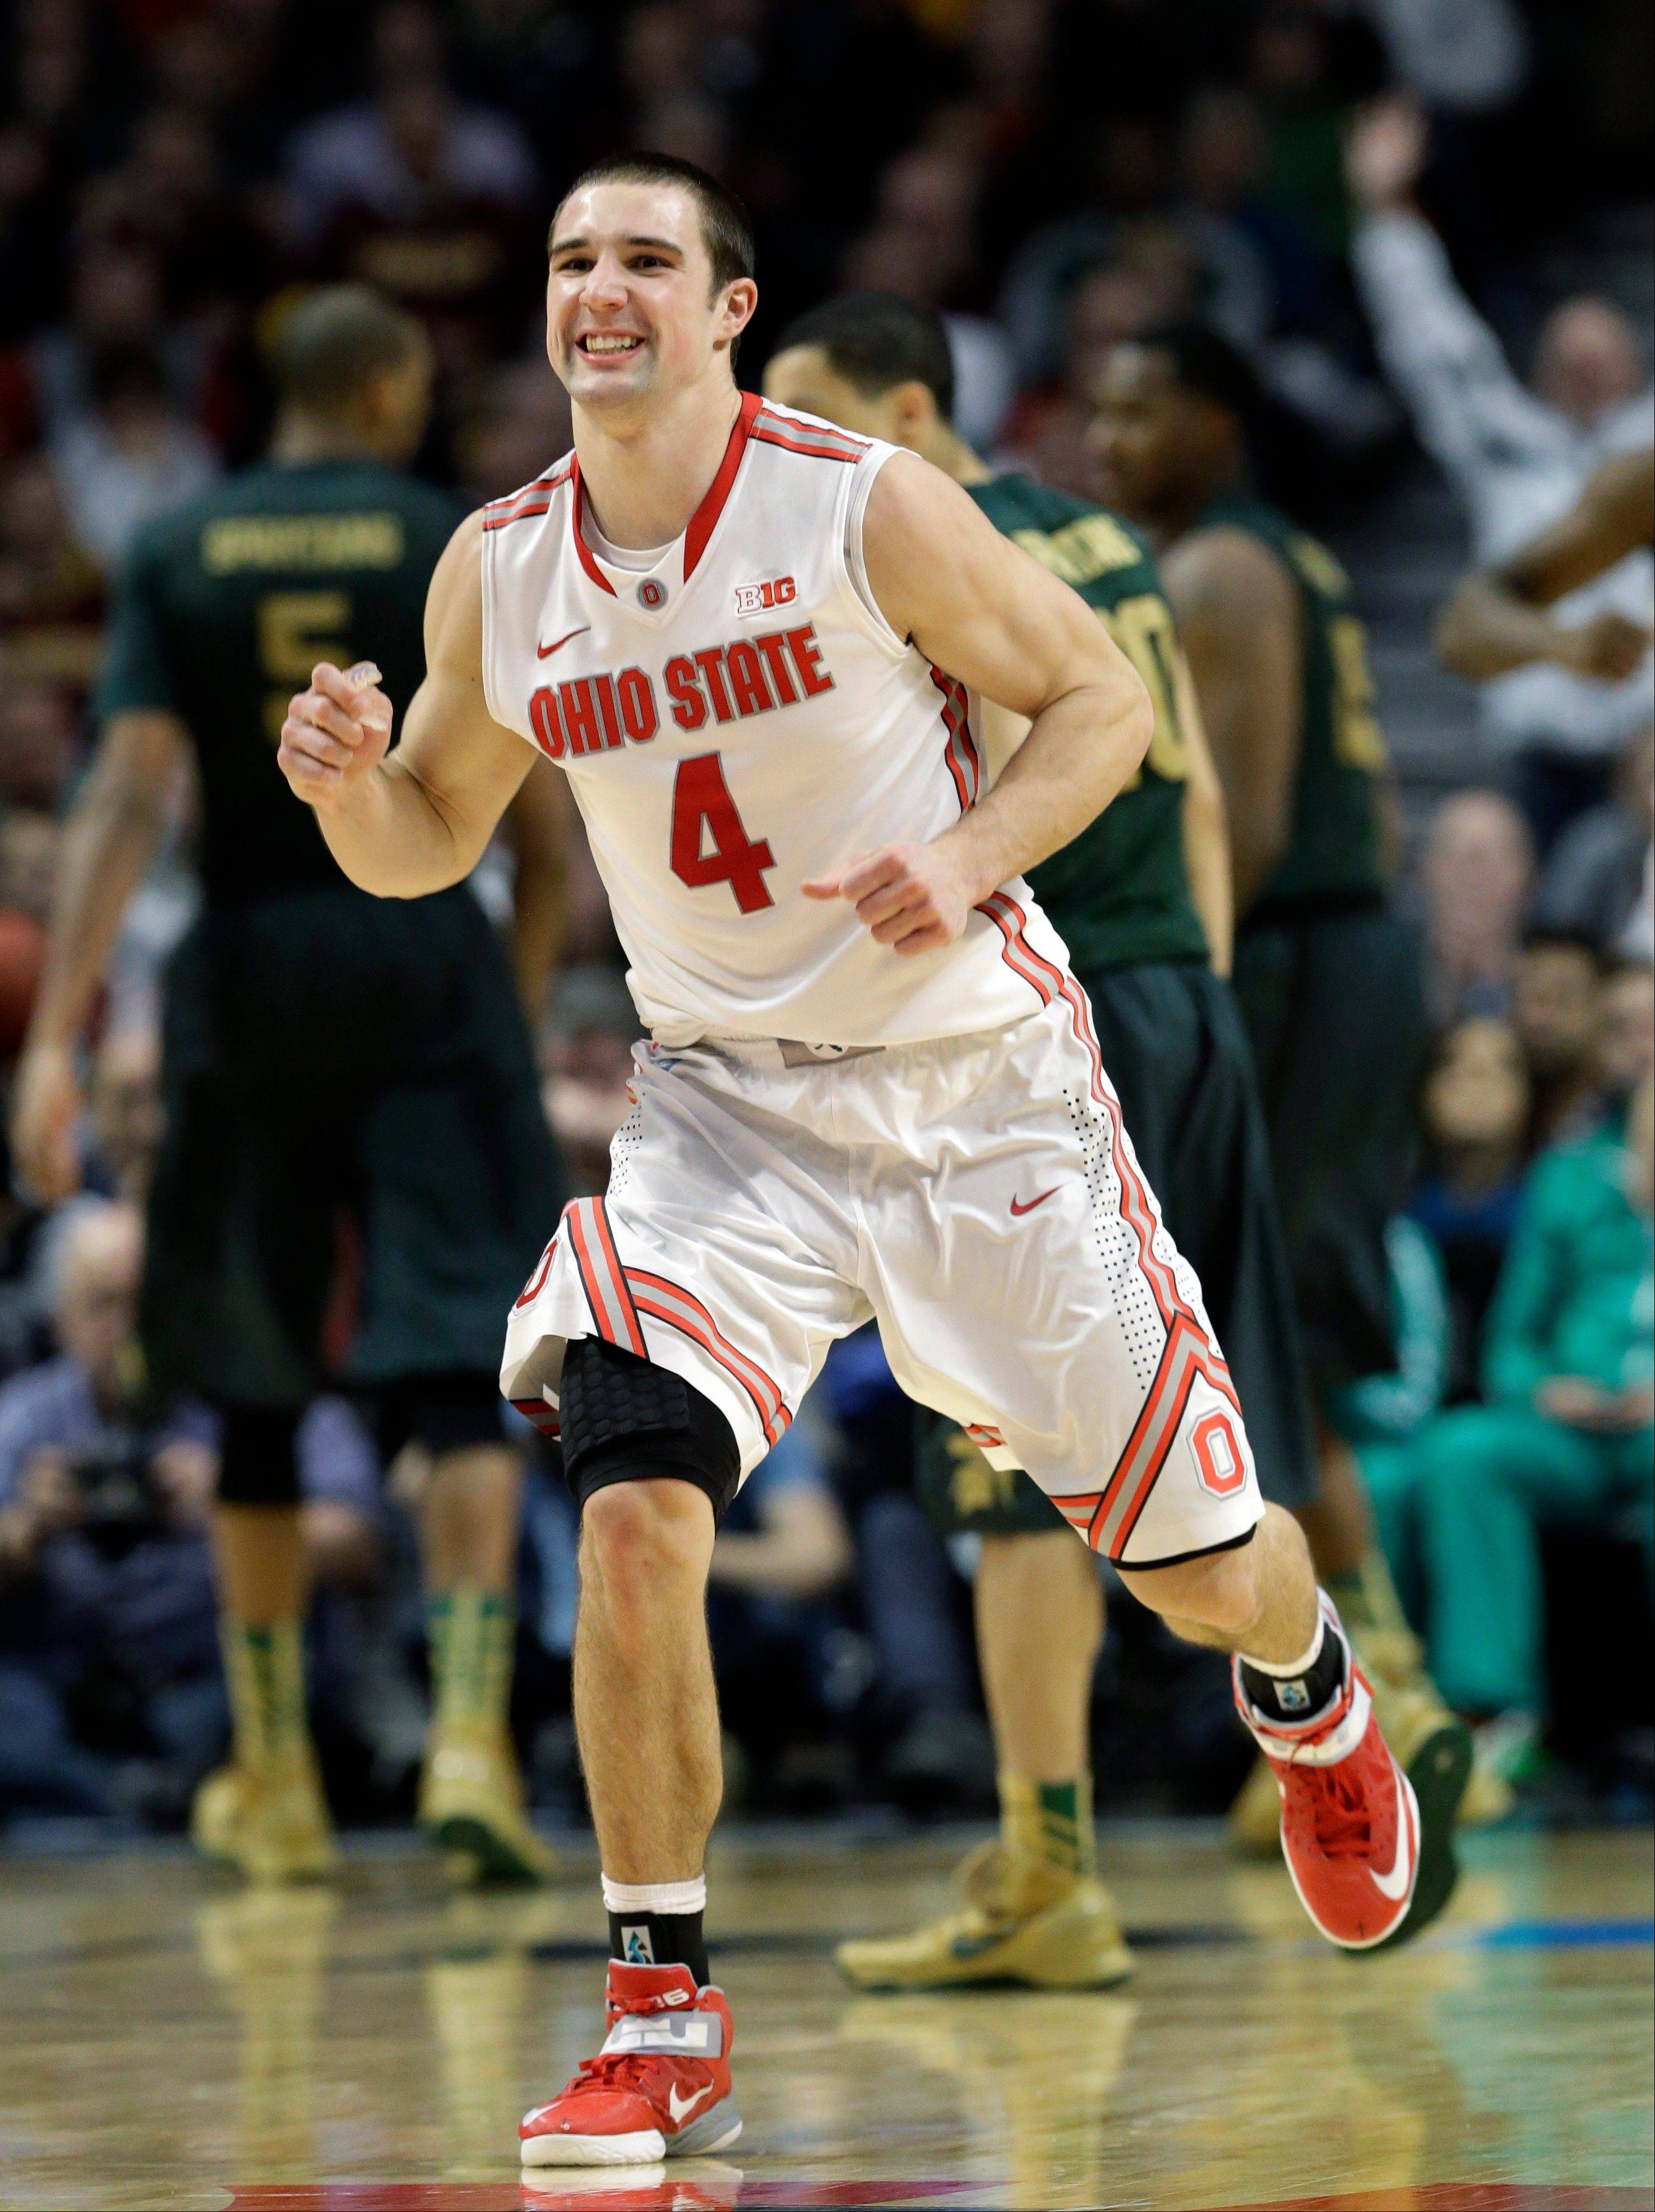 Ohio State's Aaron Craft reacts during the second half of an NCAA college basketball game against Michigan State at the Big Ten tournament Saturday, March 16, 2013, in Chicago. Ohio State won 61-58. (AP Photo/Nam Y. Huh)